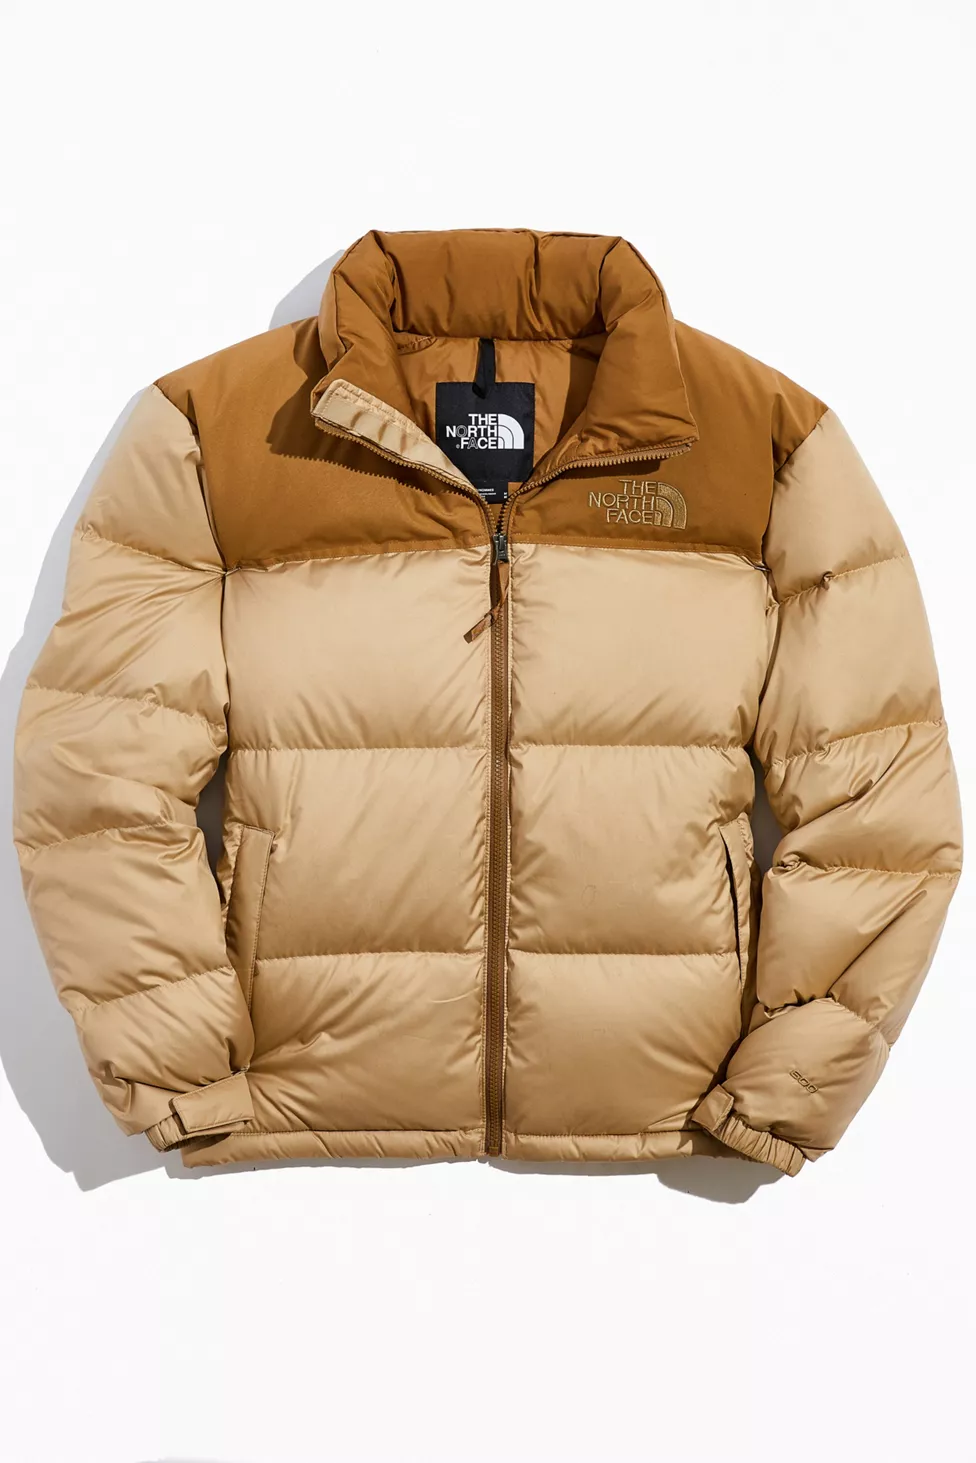 The North Face Eco Nuptse Recycled Puffer Jacket North Face Puffer Jacket North Face Puffer The North Face Puffer Jacket [ 1463 x 976 Pixel ]